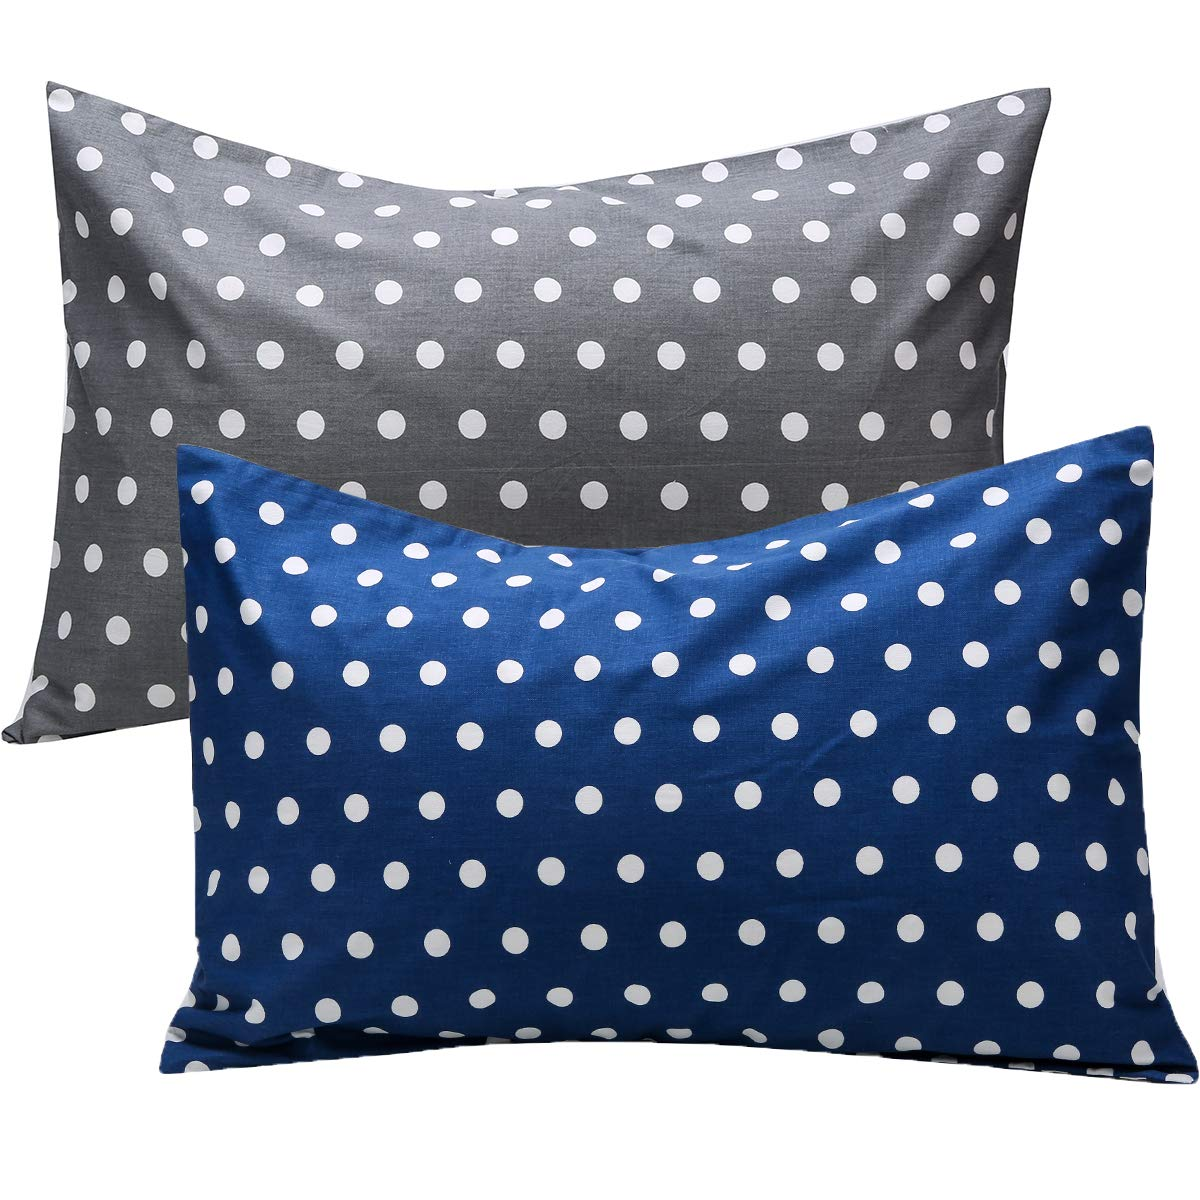 UOMNY Kids Toddler Pillowcases 2 Pack 100% Cotton Pillow Cover Pillowslip Case Fits Pillows sizesd 13 x 18 or 12x 16 for Kids Bedding Pillow Cover Baby Pillow Cases Point Kids' Pillowcases Grey/Blue